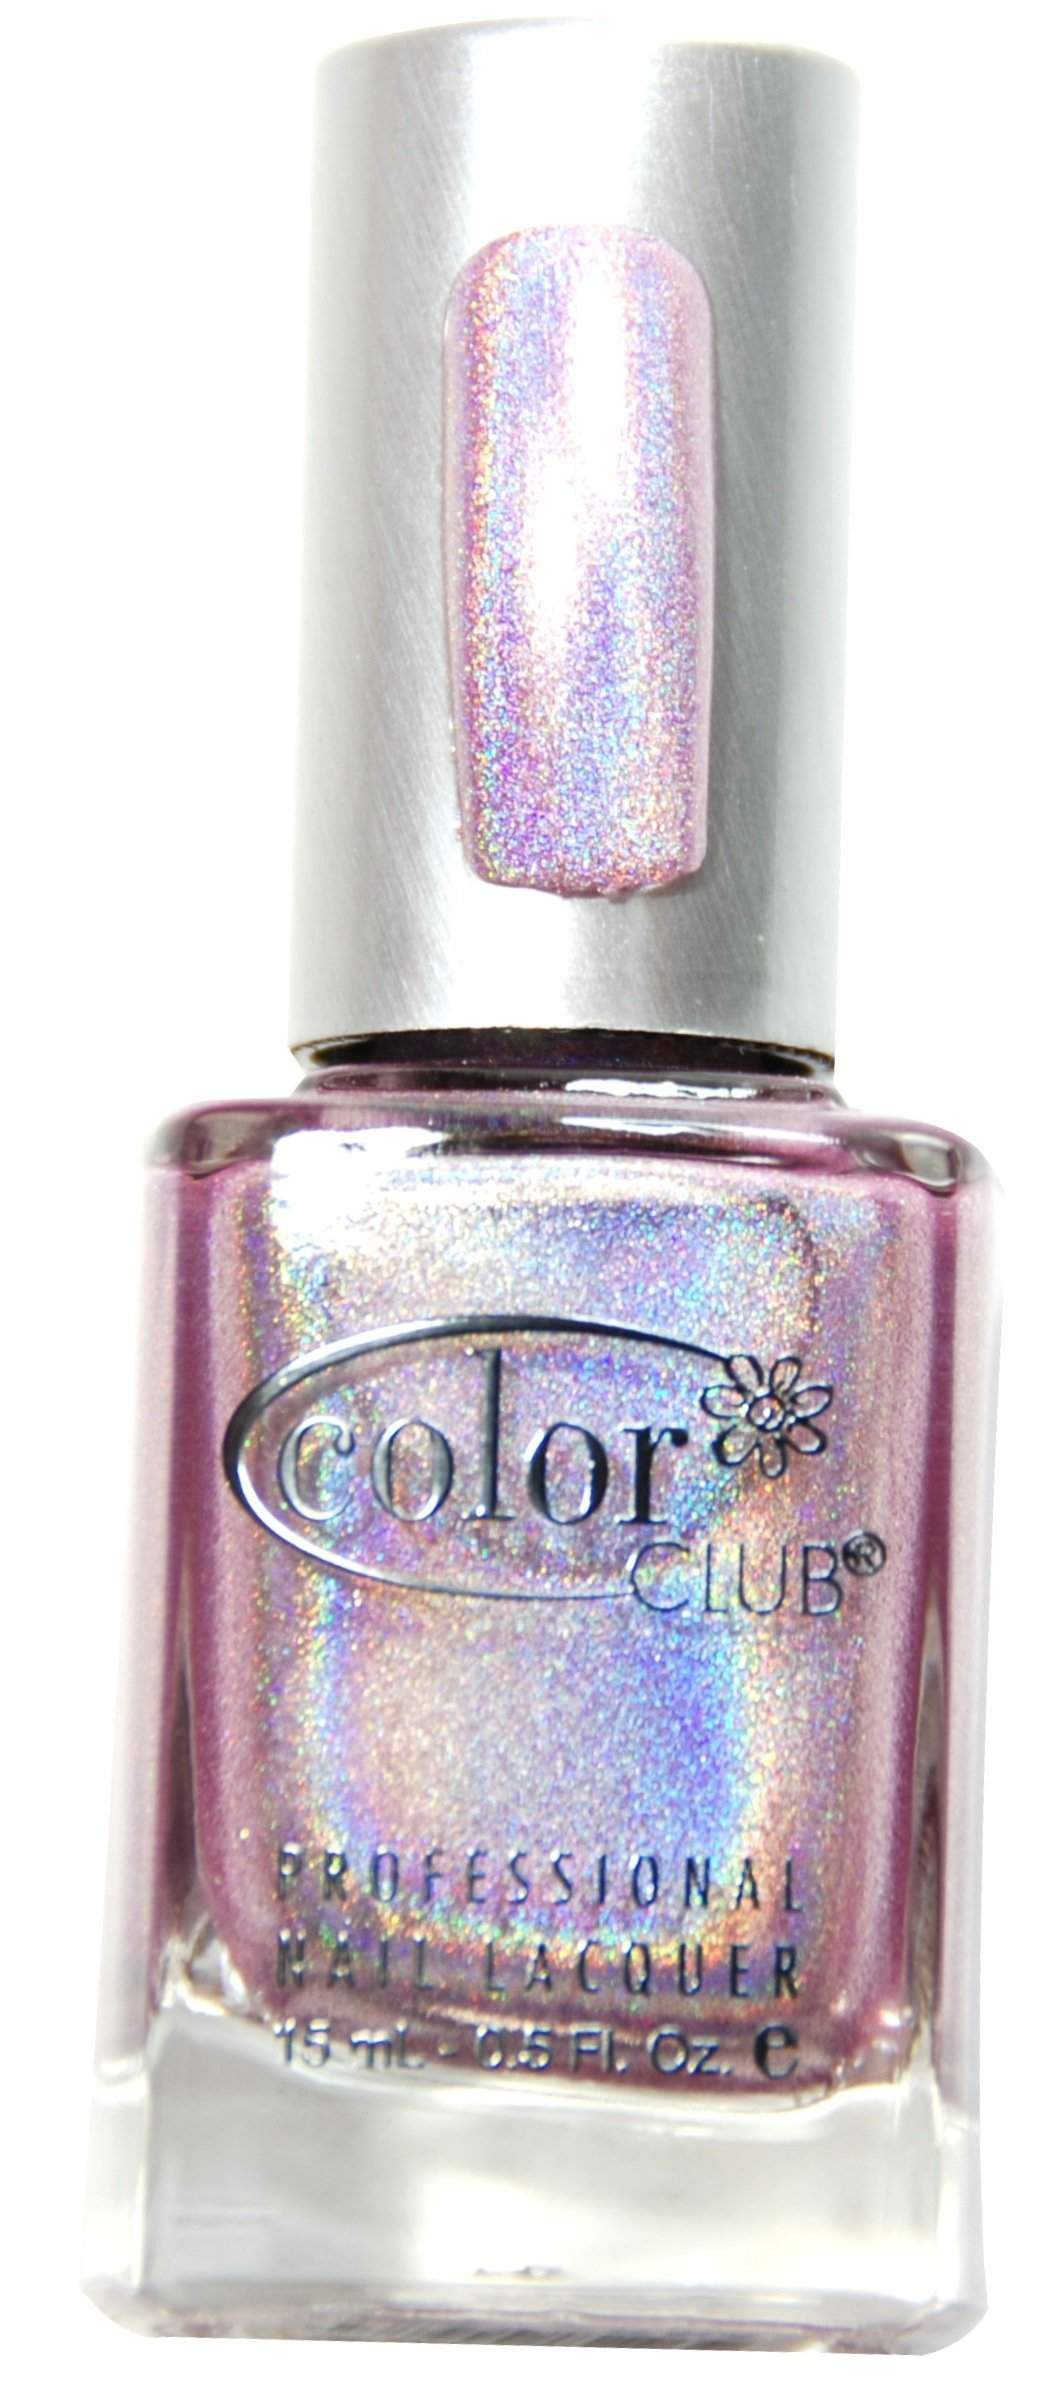 Color Club, Color Club Hologram - Cloud Nine, Mk Beauty Club, Nail Polish